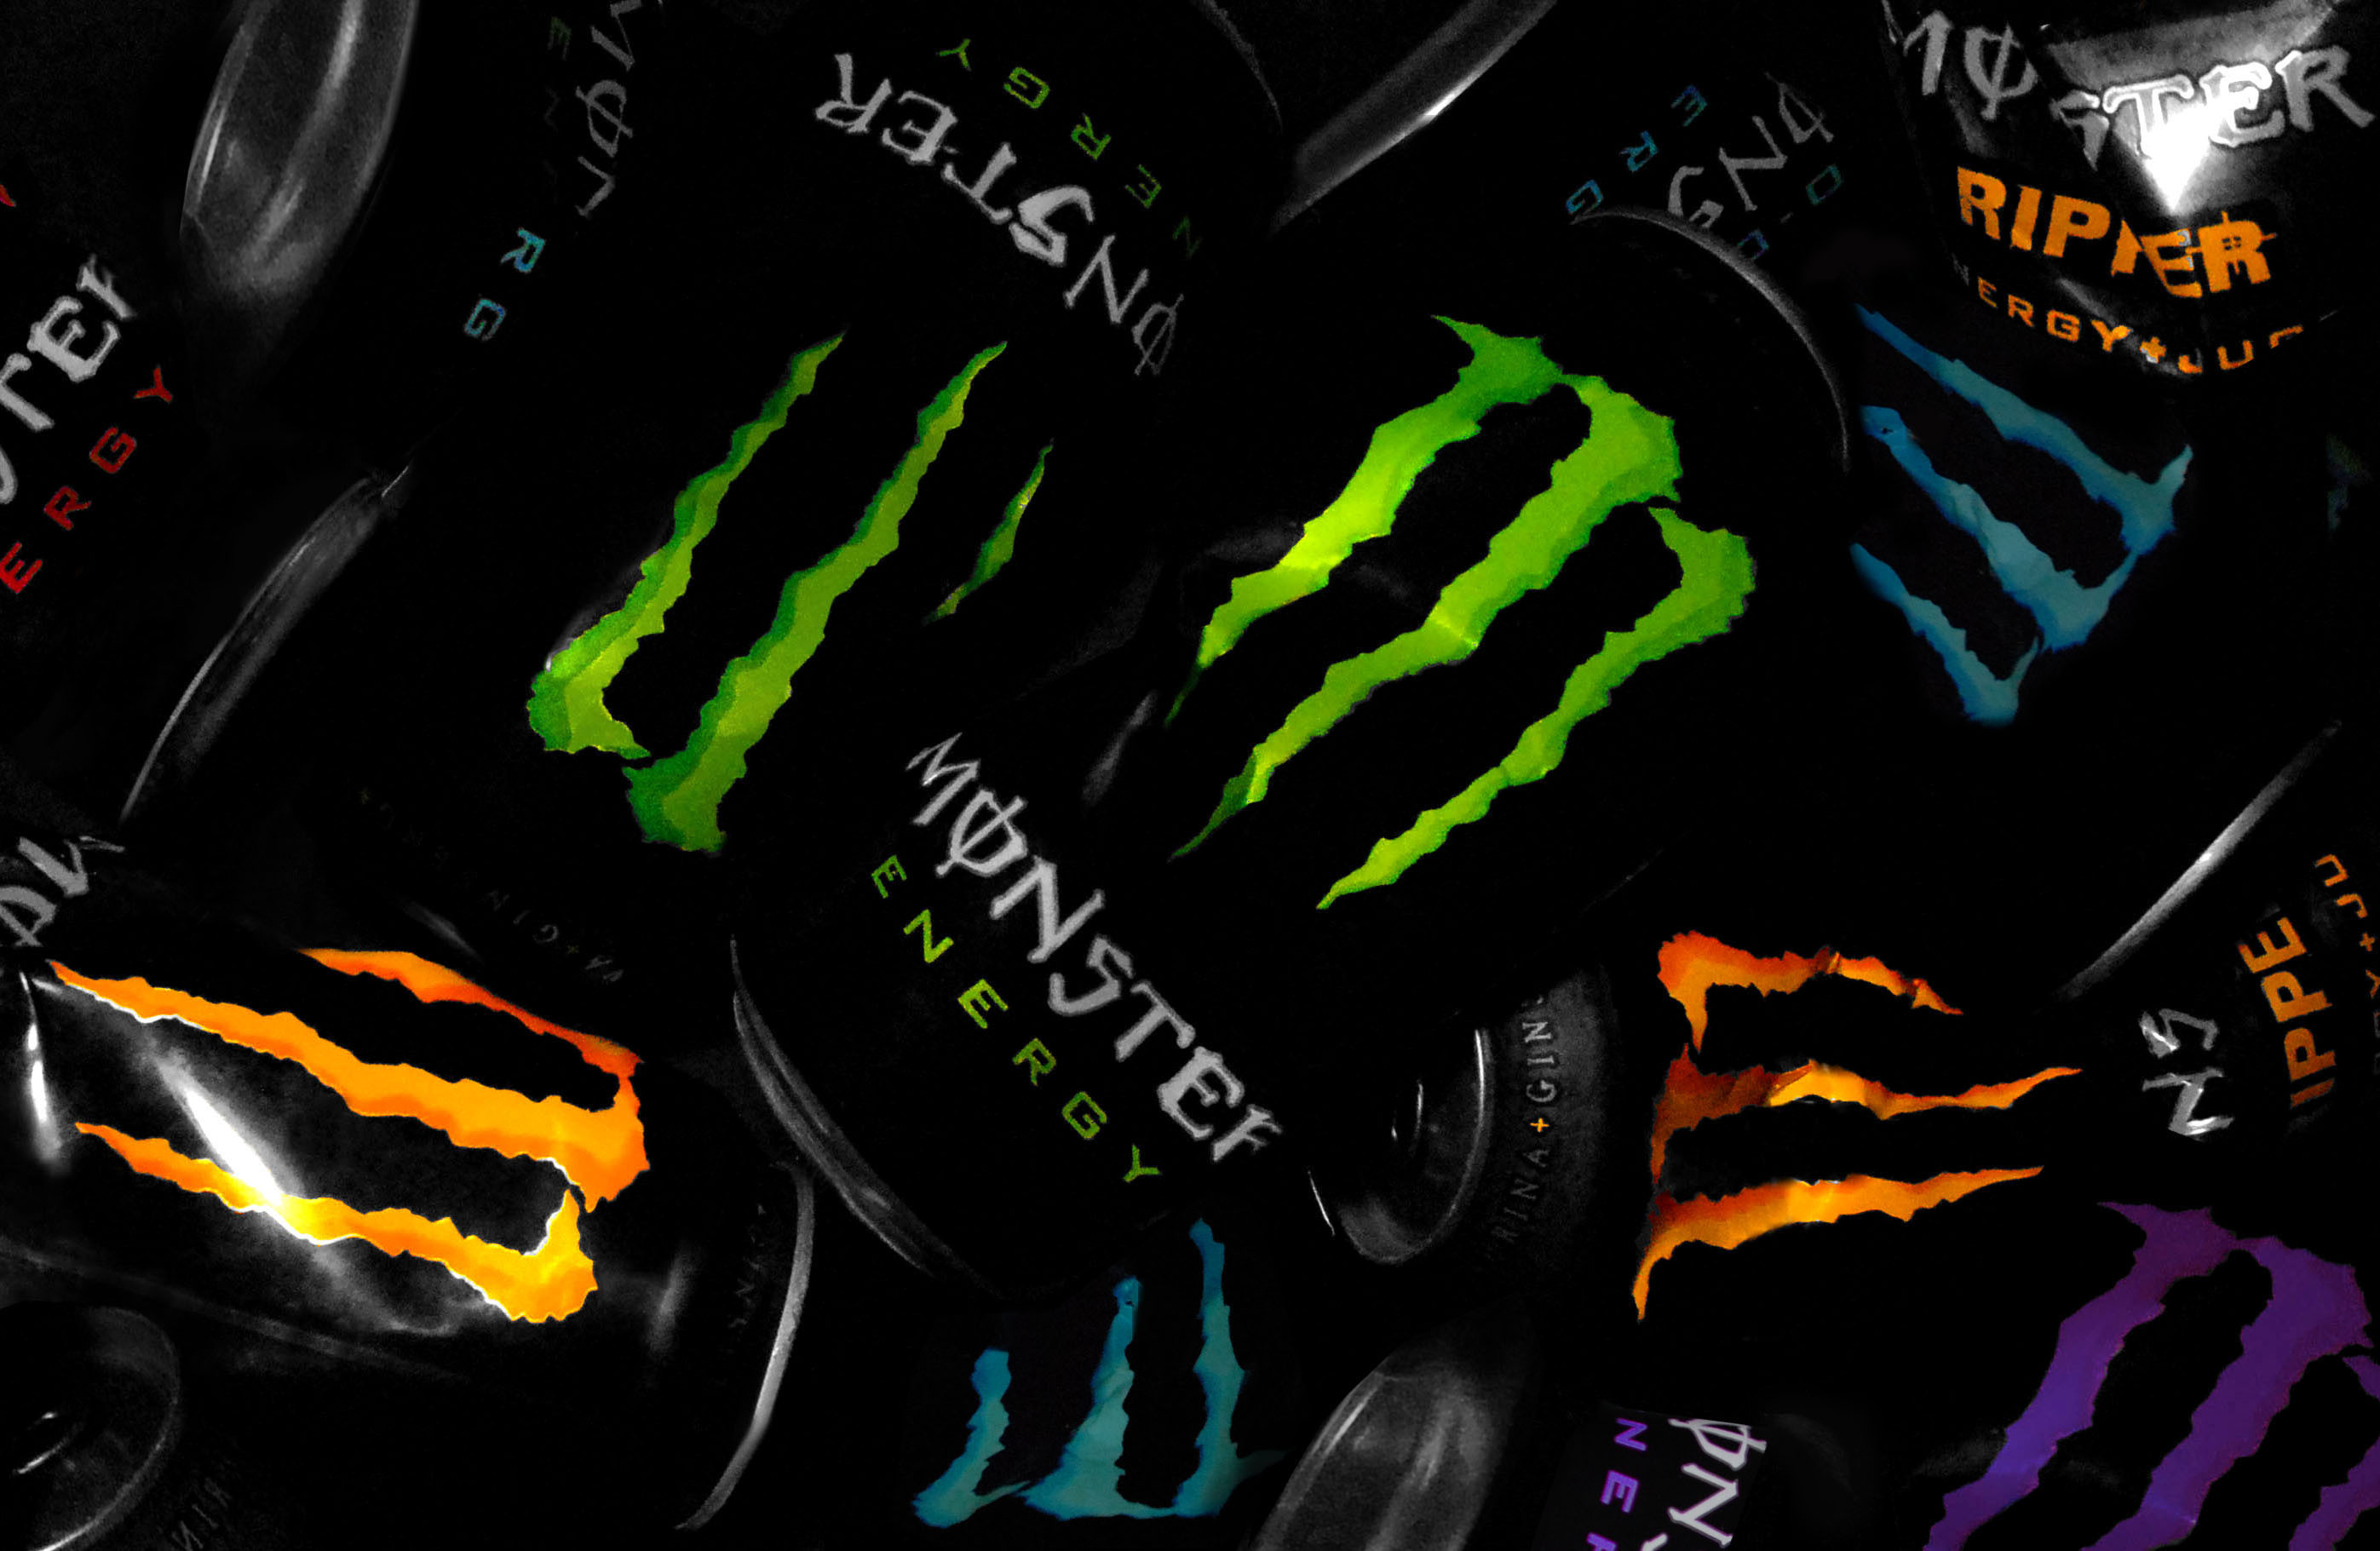 Nos Energy Drink Wallpaper 60 images 2794x1821